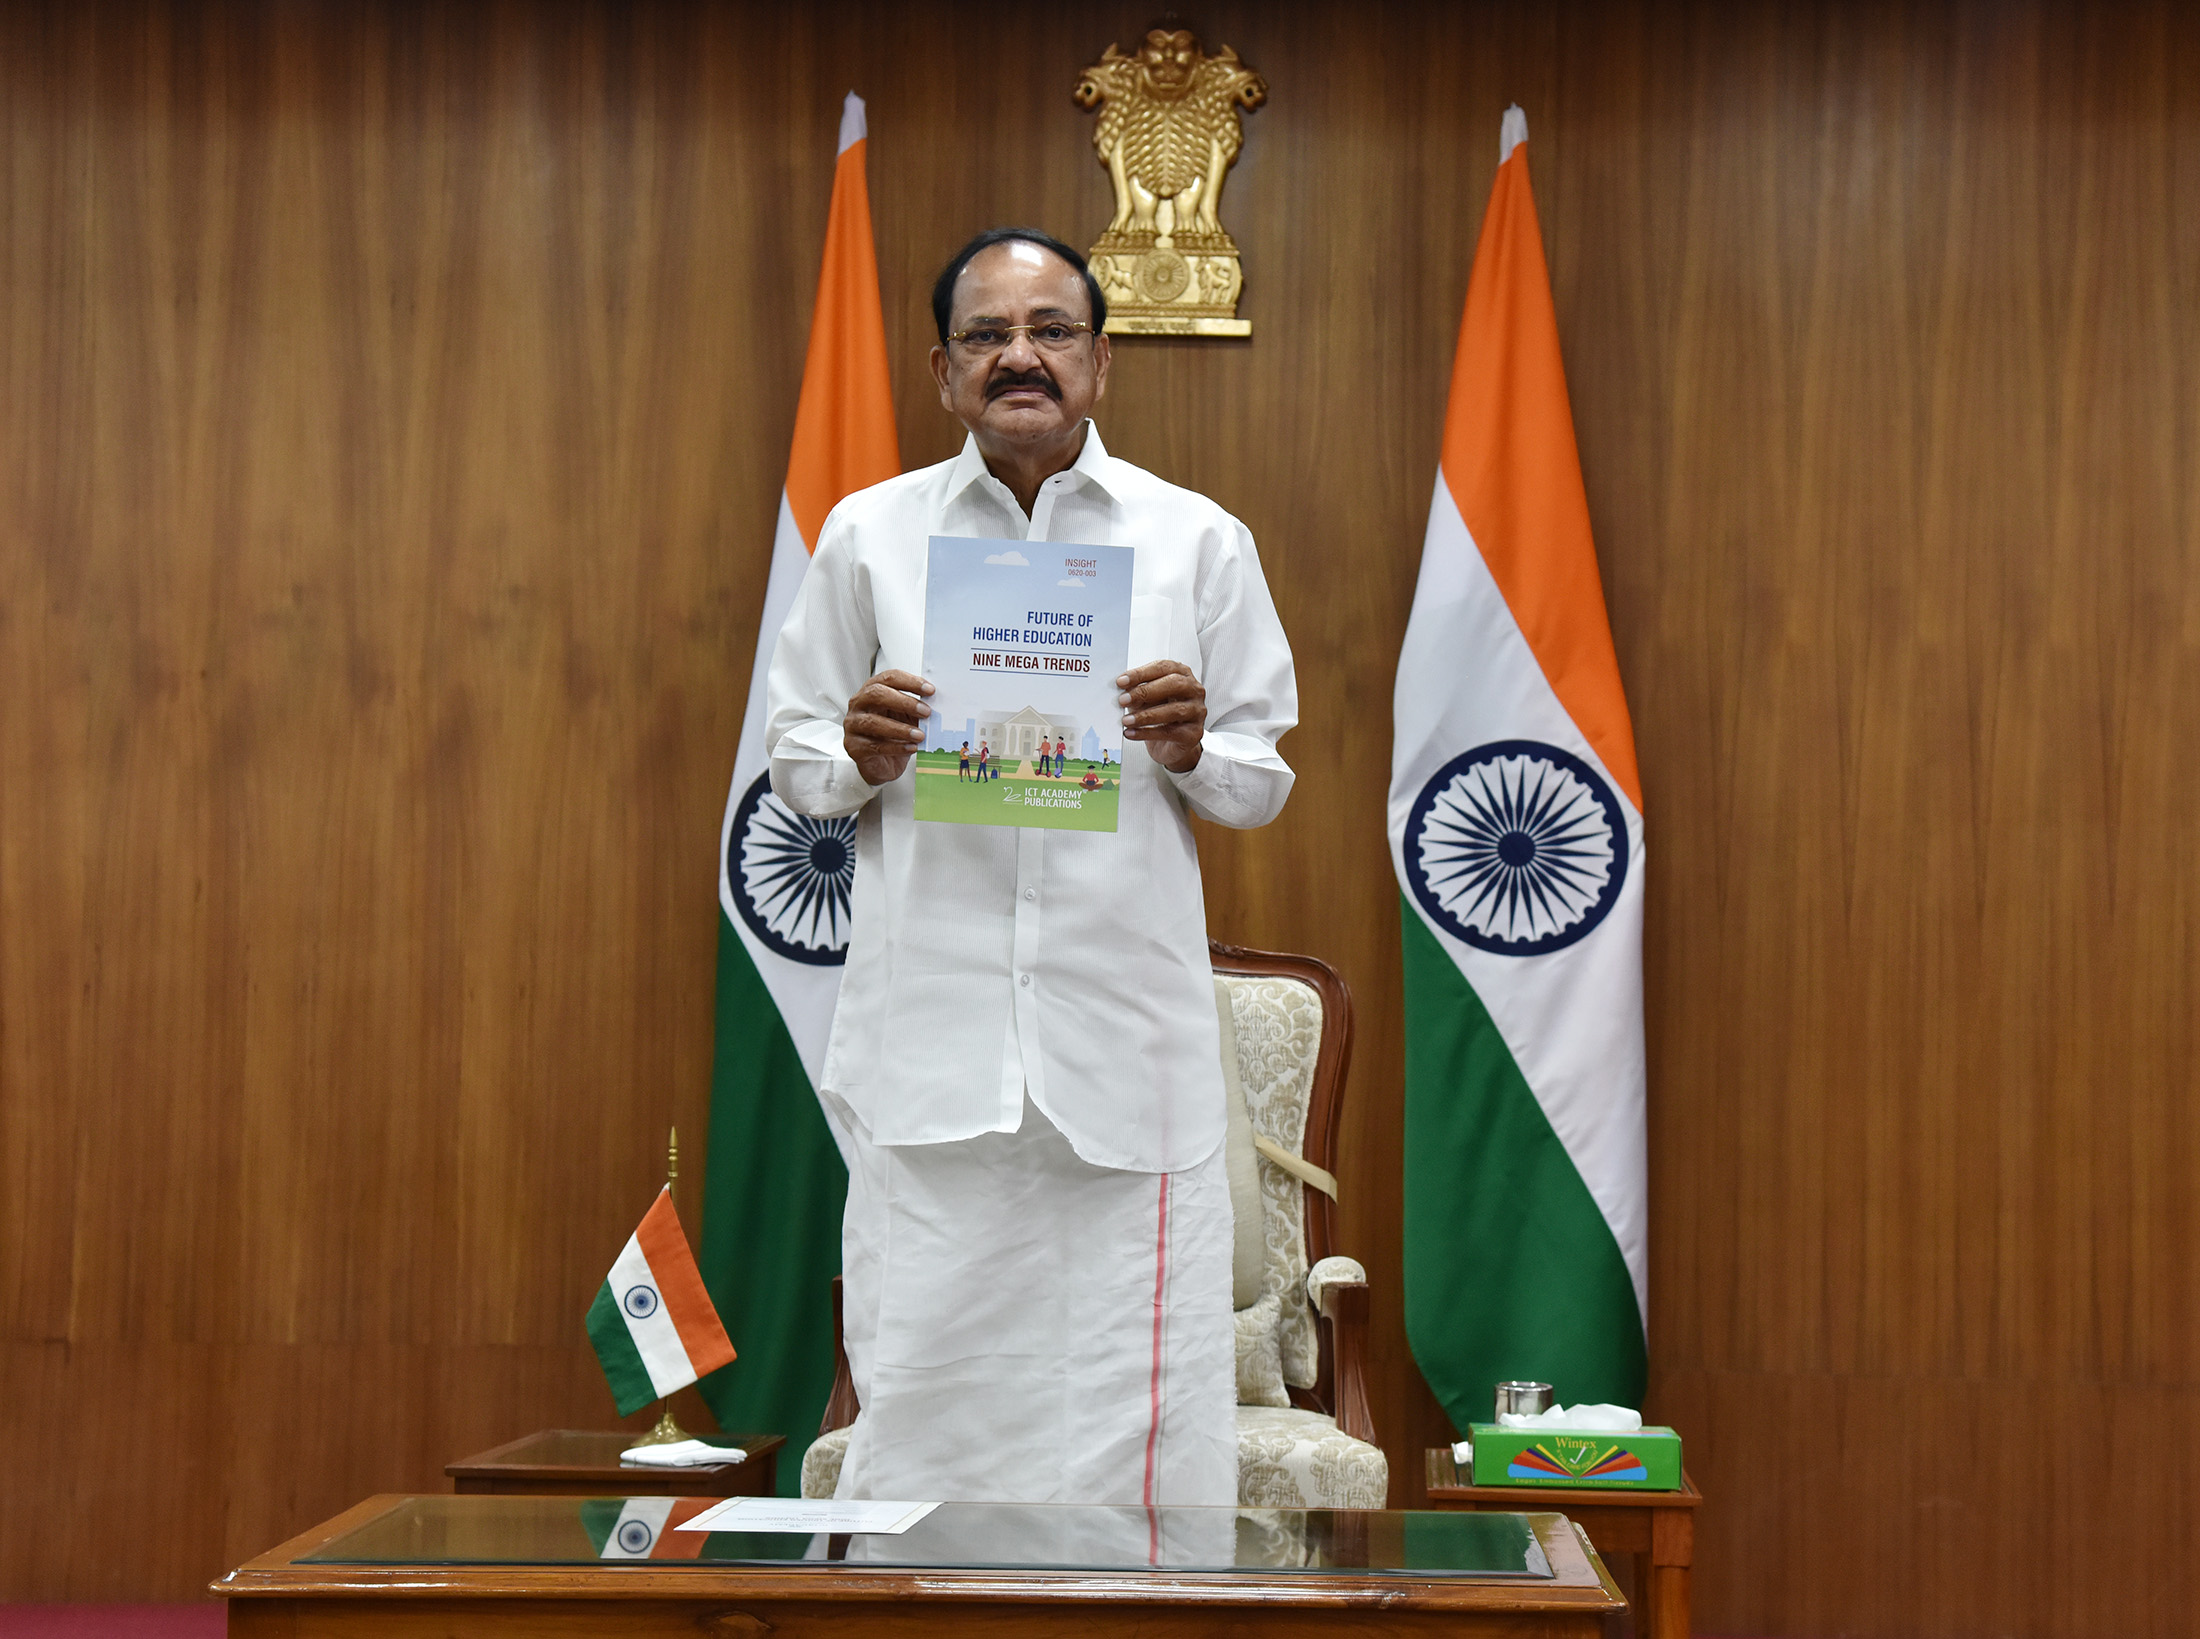 """The Vice President, Shri M Venkaiah Naidu virtually releasing the book titled """"Future of Higher Education - Nine Megatrends"""", brought out by ICT Academy, through video conferencing, at Upa-Rashtrapati Bhavan, in New Delhi on 30 June, 2020."""